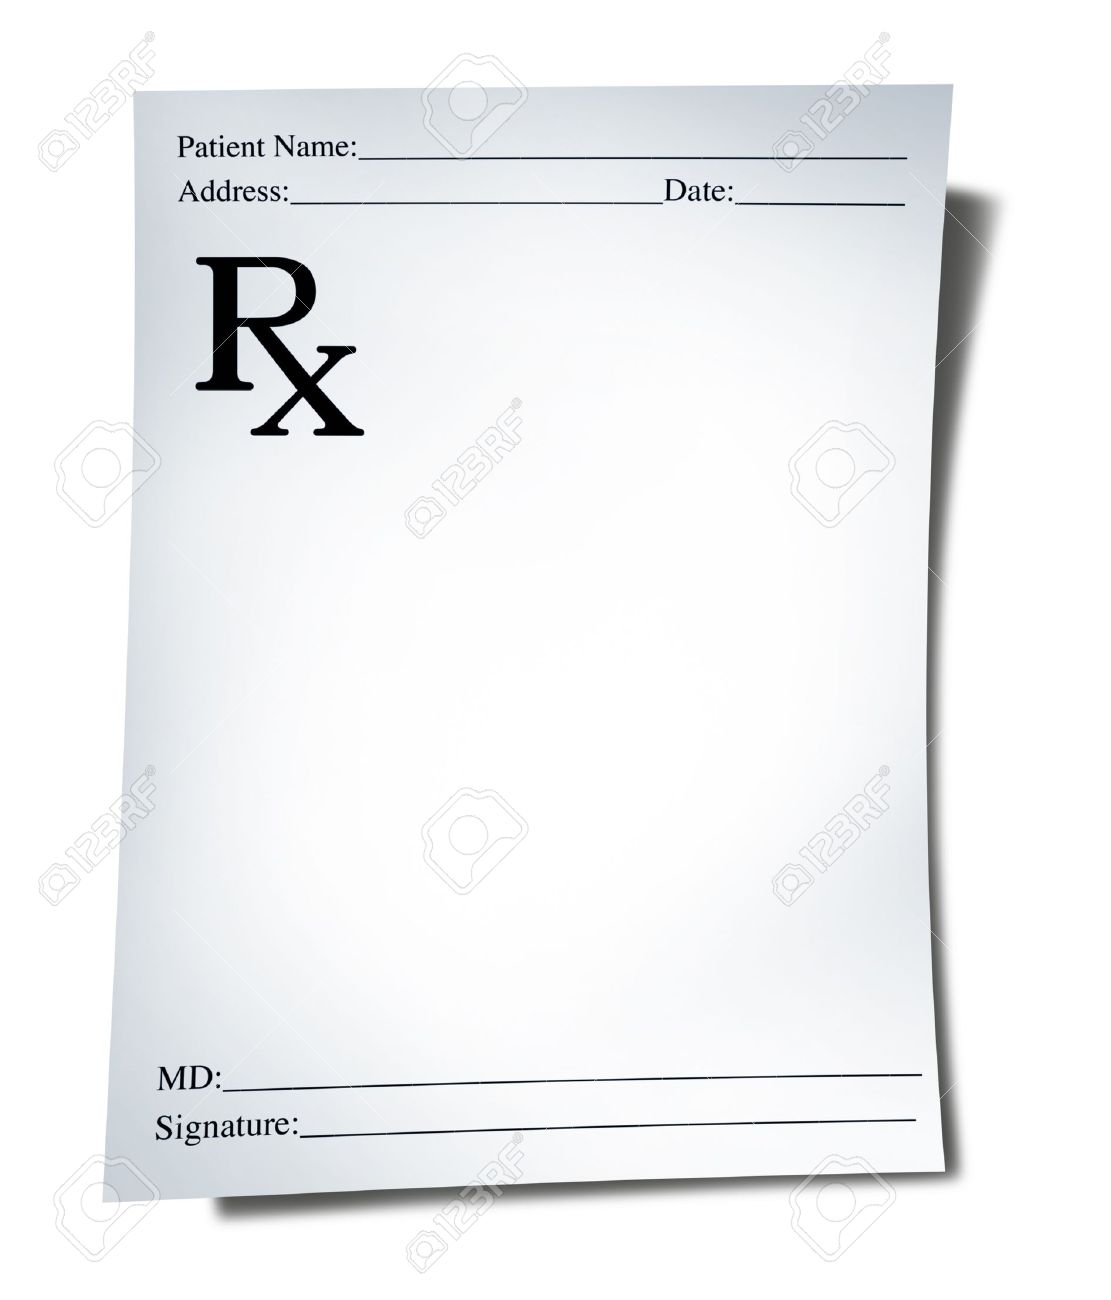 Prescription Pad Stock Photos & Pictures. Royalty Free ...